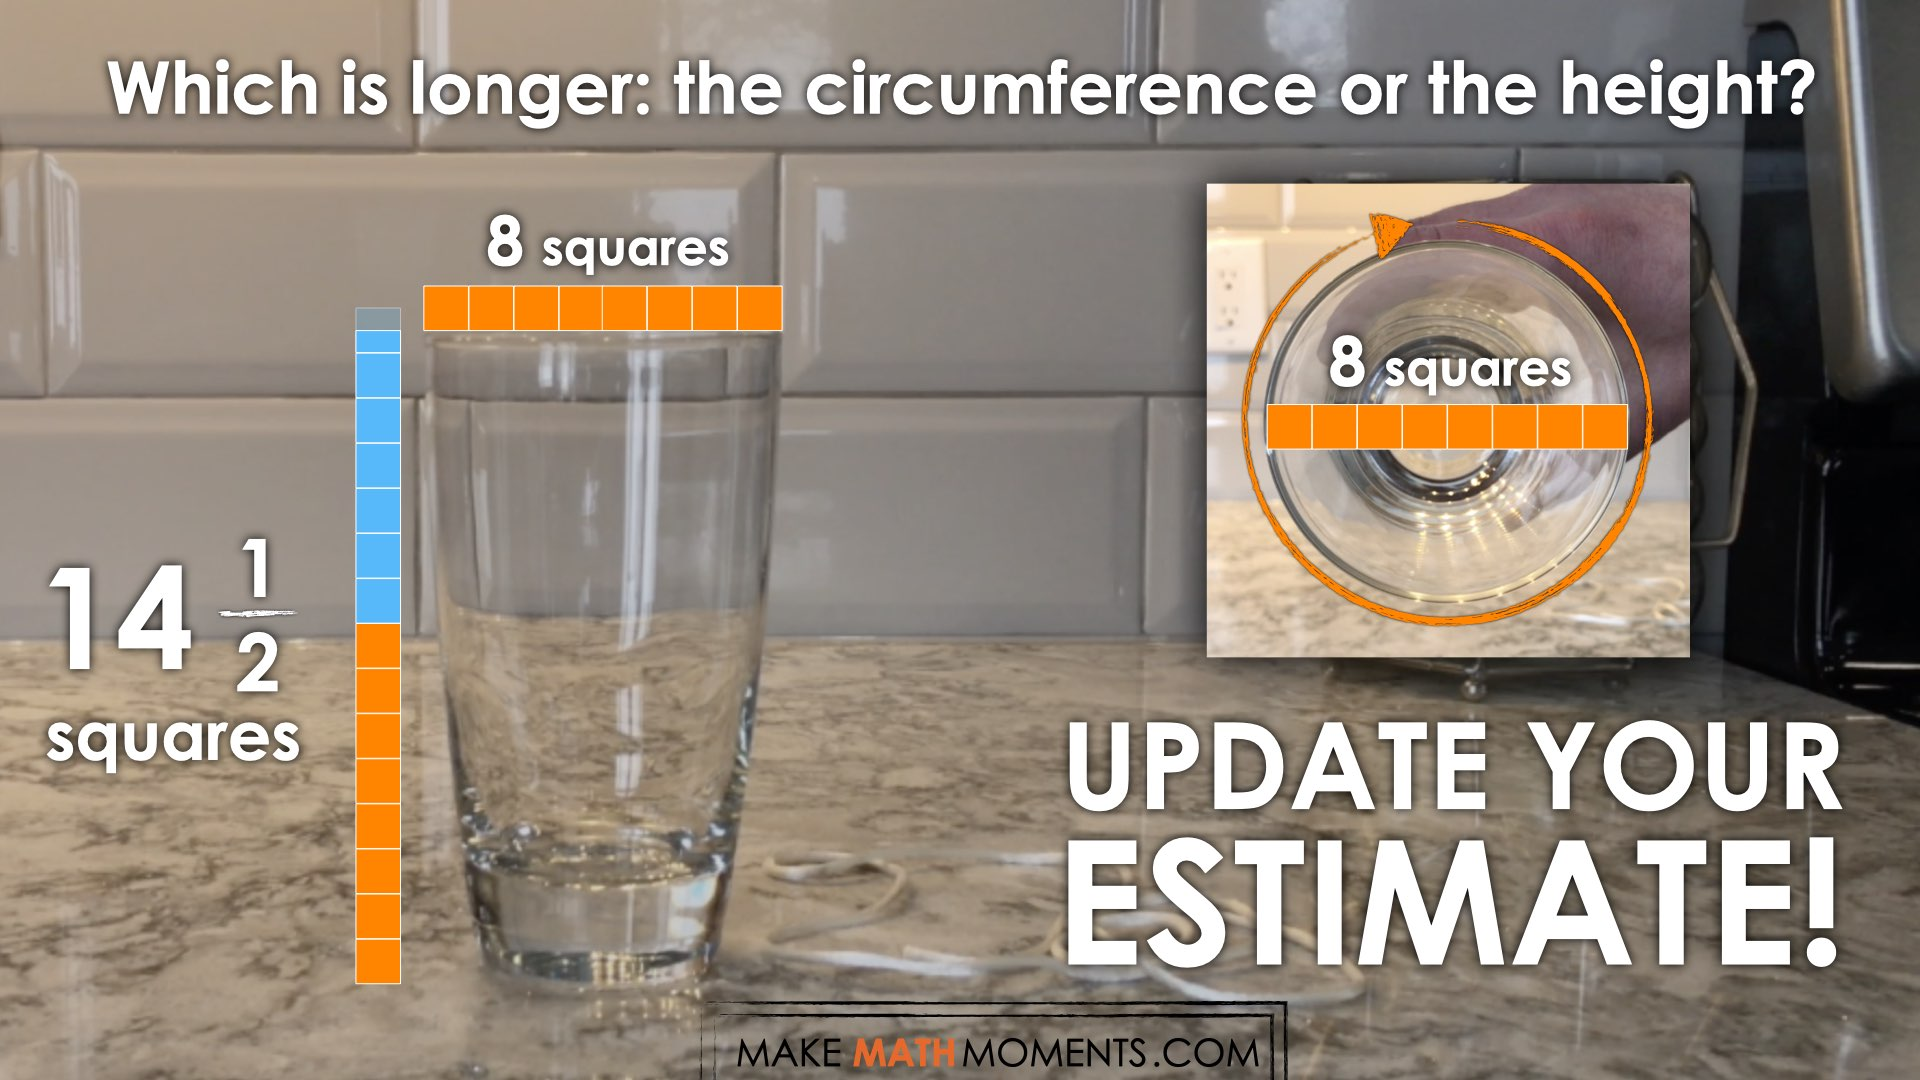 Going-In-Circles-Day-1-Circumference-vs-Height-07-Sense-Making-Prompt-Image.001.jpeg